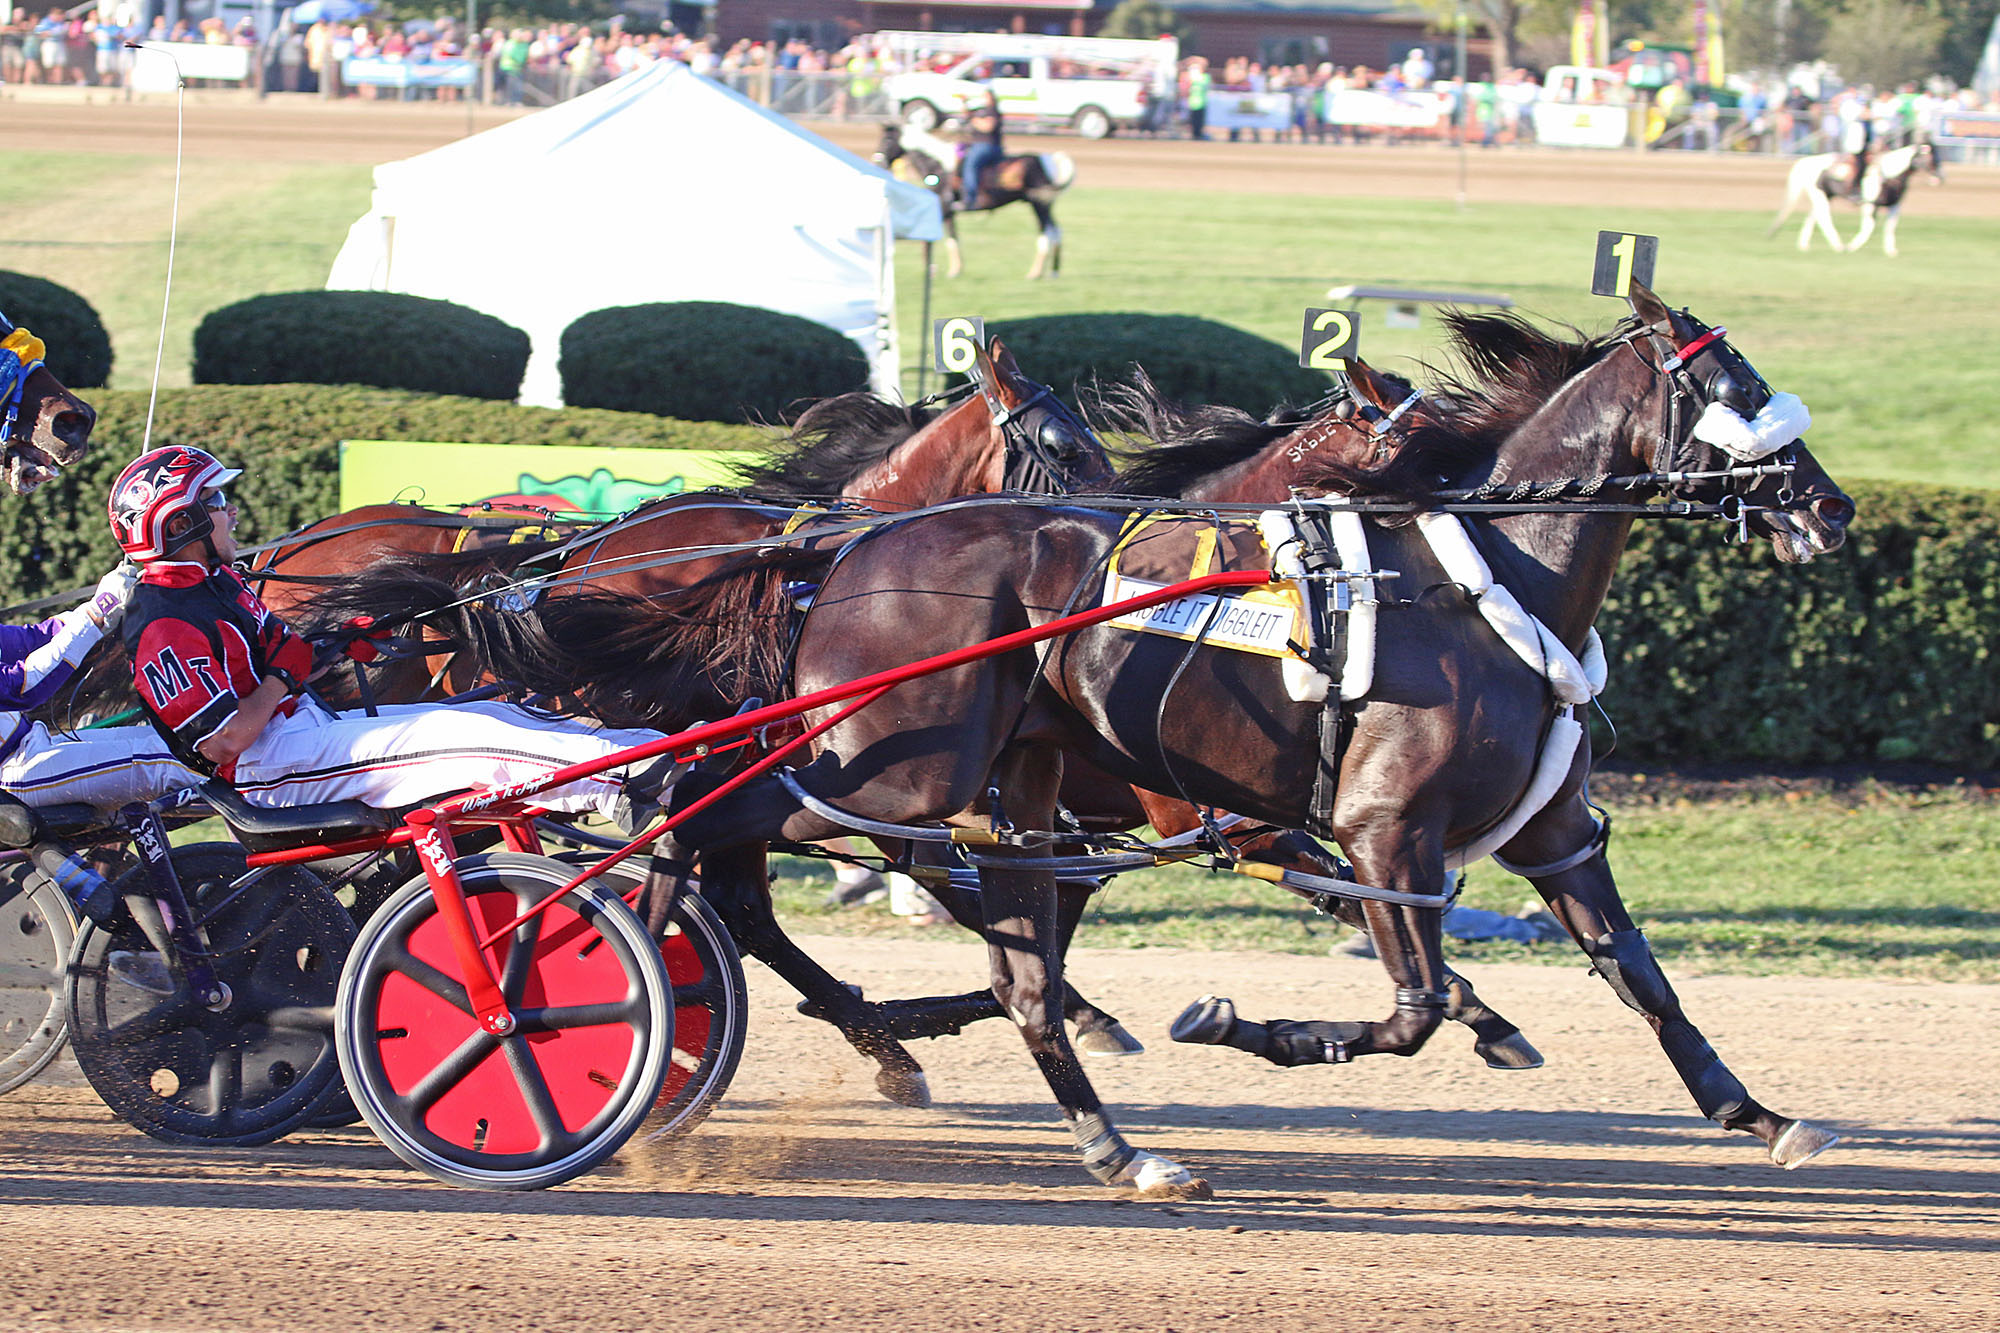 FILE - In this Sept. 24, 2015, file photo, Montrel Teague drives Wiggle It Jiggleit, foreground, across the finish line to win the Little Brown Jug harness race at the Delaware County Fairgrounds in Delaware, Ohio. Wiggle It Jiggleit is harness racing's H